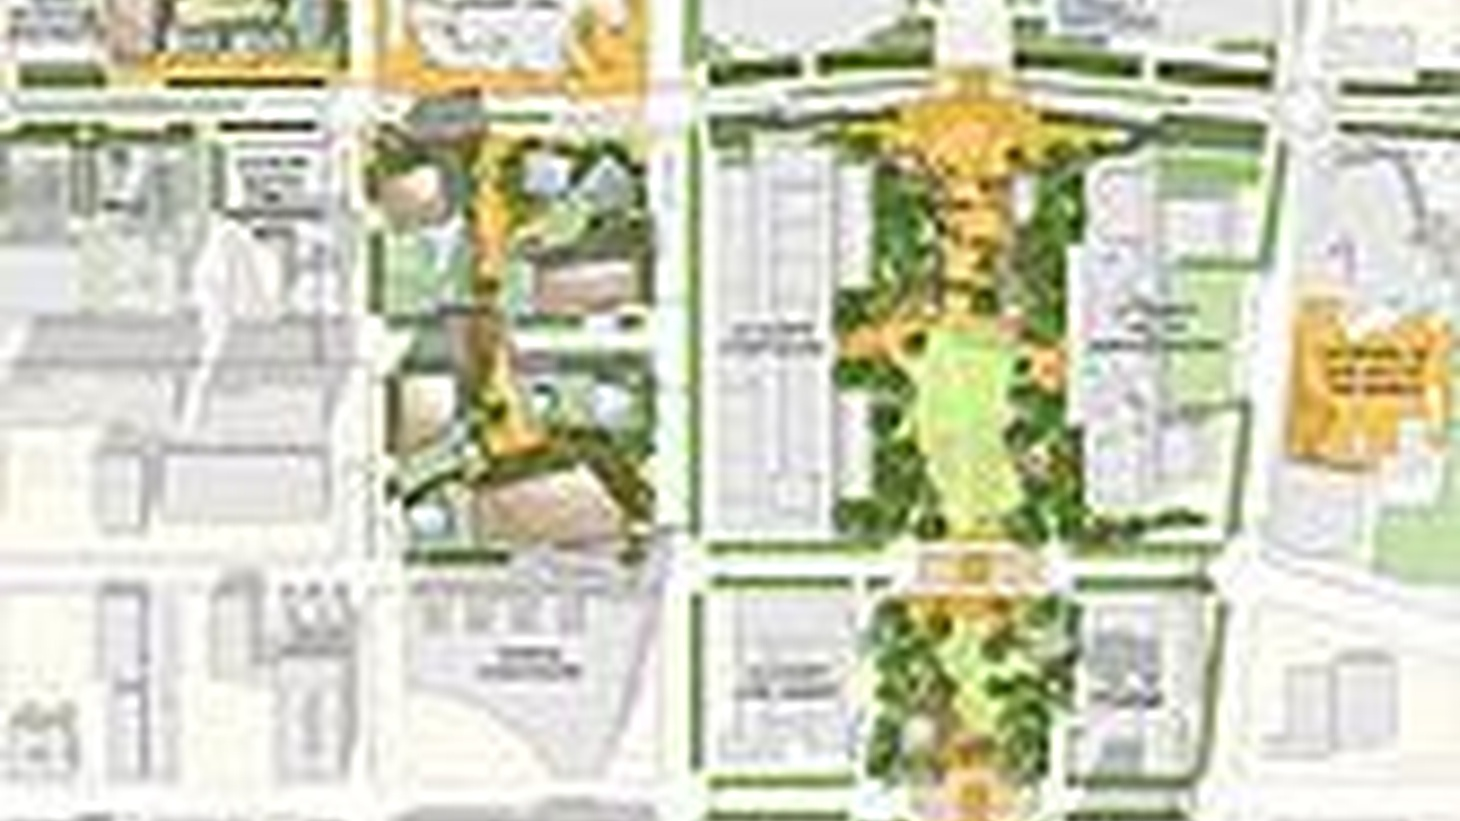 """Mayor Antonio Villariagosa is all in favor of spending $100 million in taxpayers' money to subsidize the Grand Avenue Project in downtown LA, but County Supervisor Mike Antonovich says it could turn into an """"endless subsidy."""" That issue, as well as the contribution of several acres of public land, will be on tomorrow's agenda for the Los Angeles City Council and the Board of Supervisors. The project, partly designed by Frank Gehry, will be across the street from Gehry's iconic Disney Hall. The project's total value is $2 billion. Why does the public have to come up with $100 million? We hear the pros and cons from LA Times columnist Steve Lopez and others."""